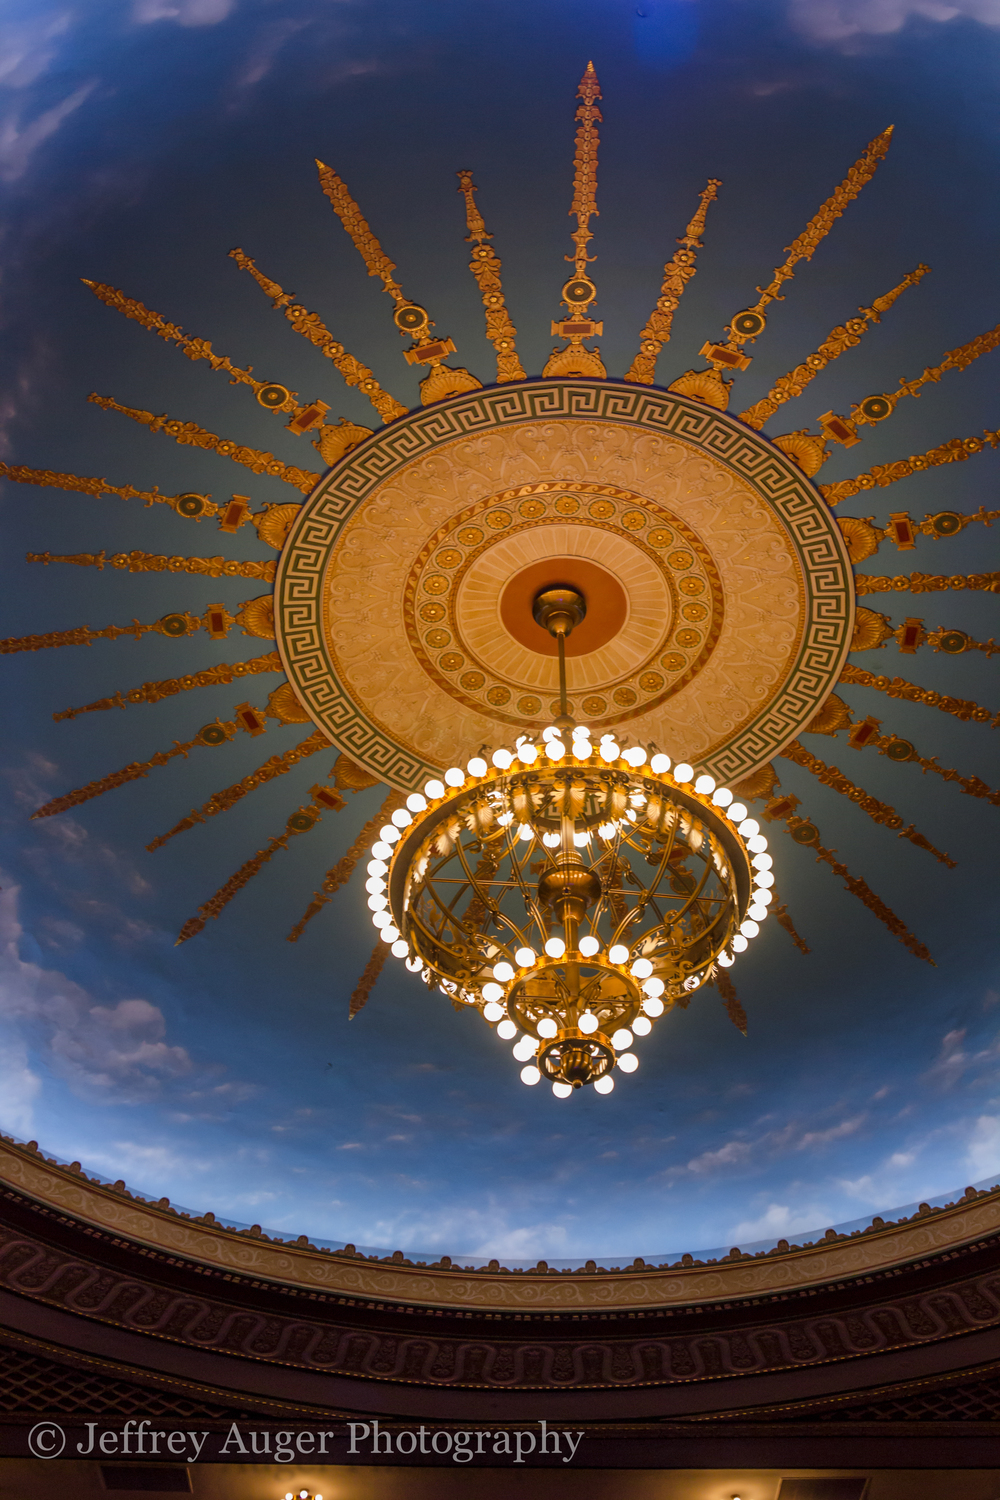 The dome of the Count Basie Theatre